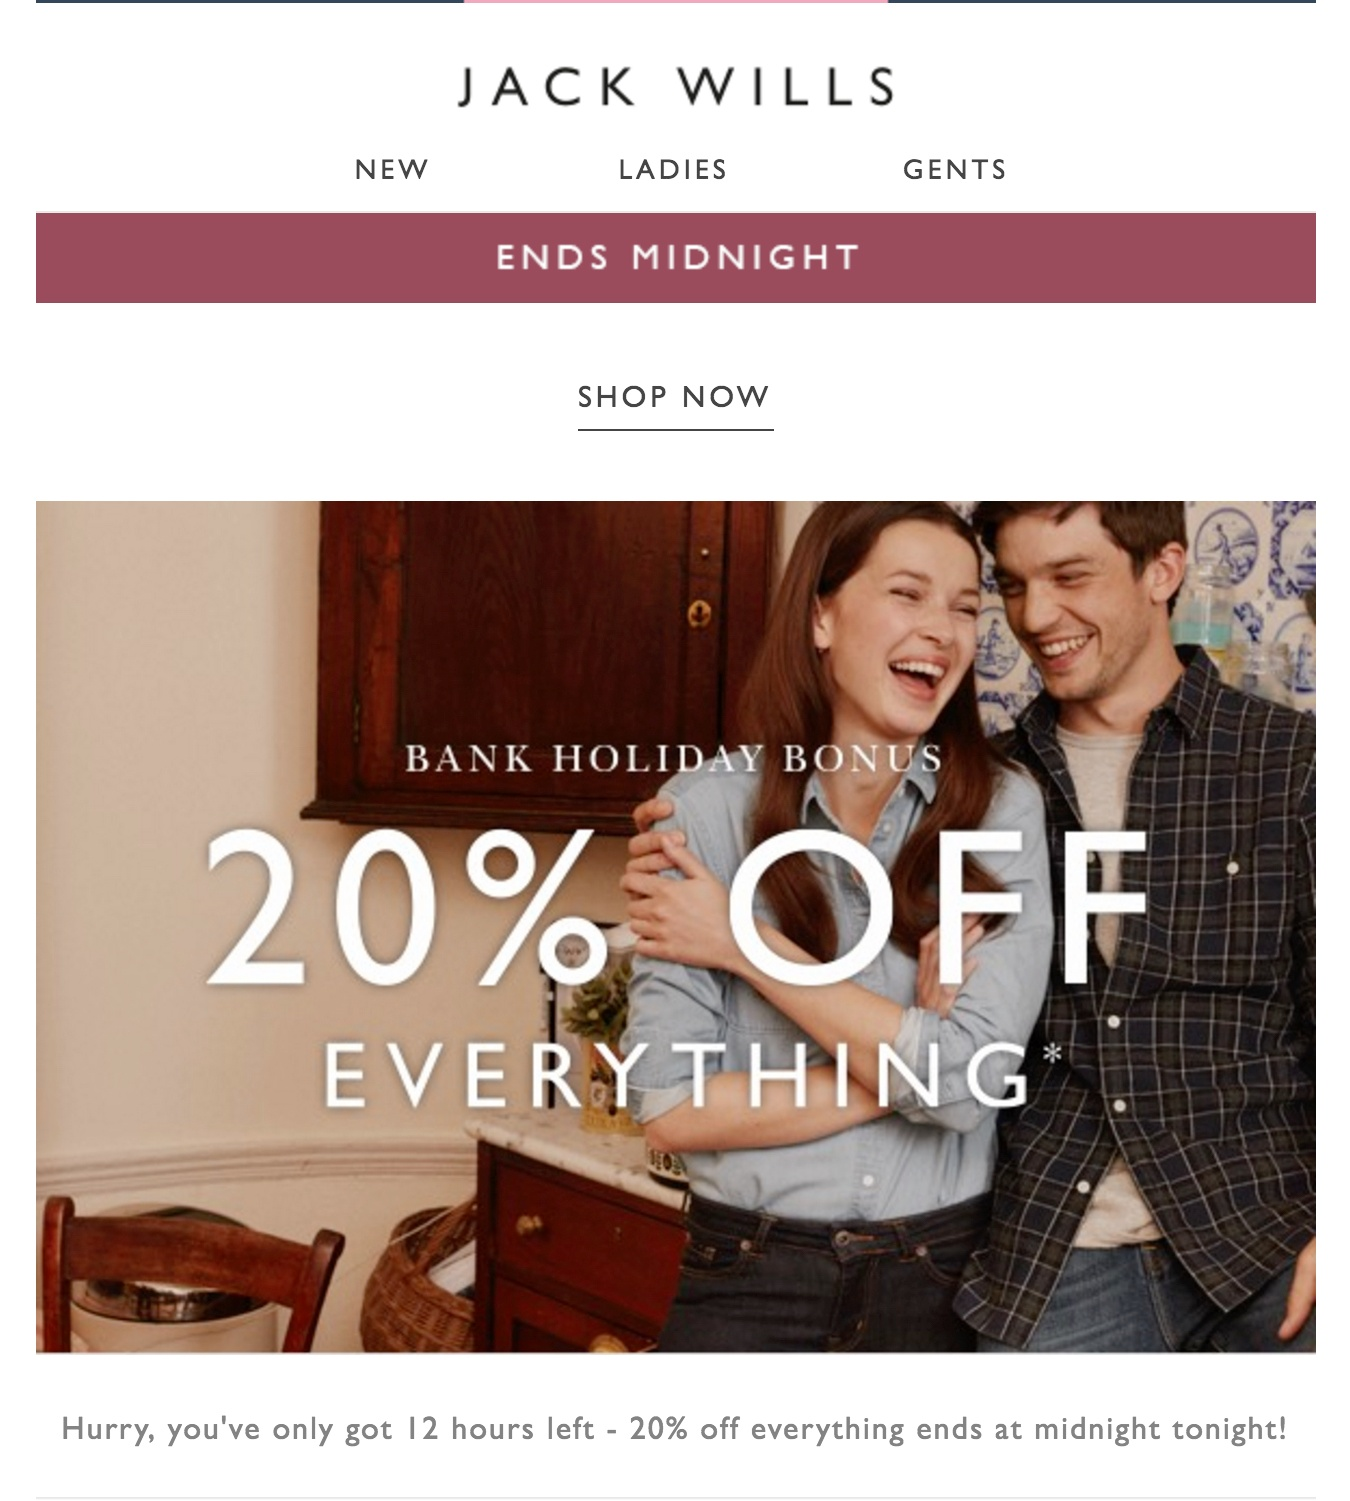 Jack Wills Offer Email